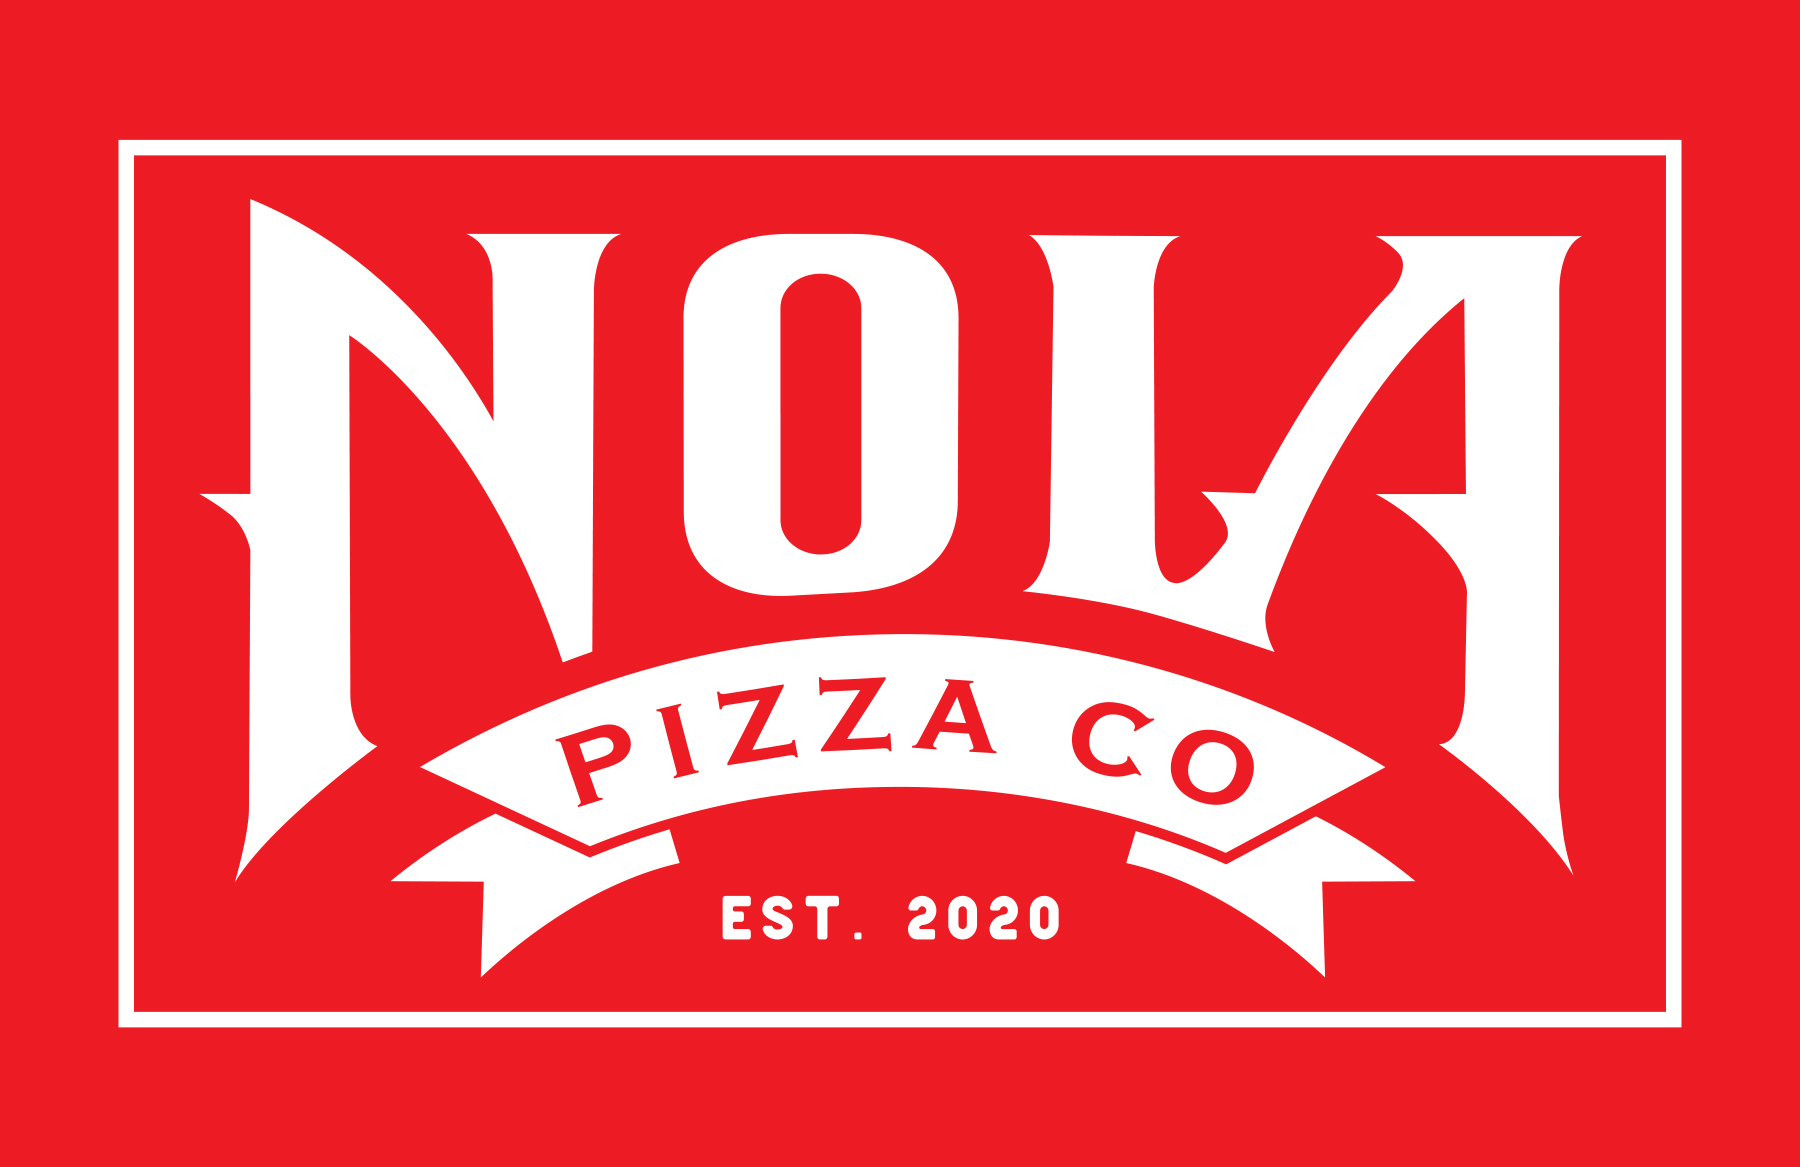 NOLA Pizza Co